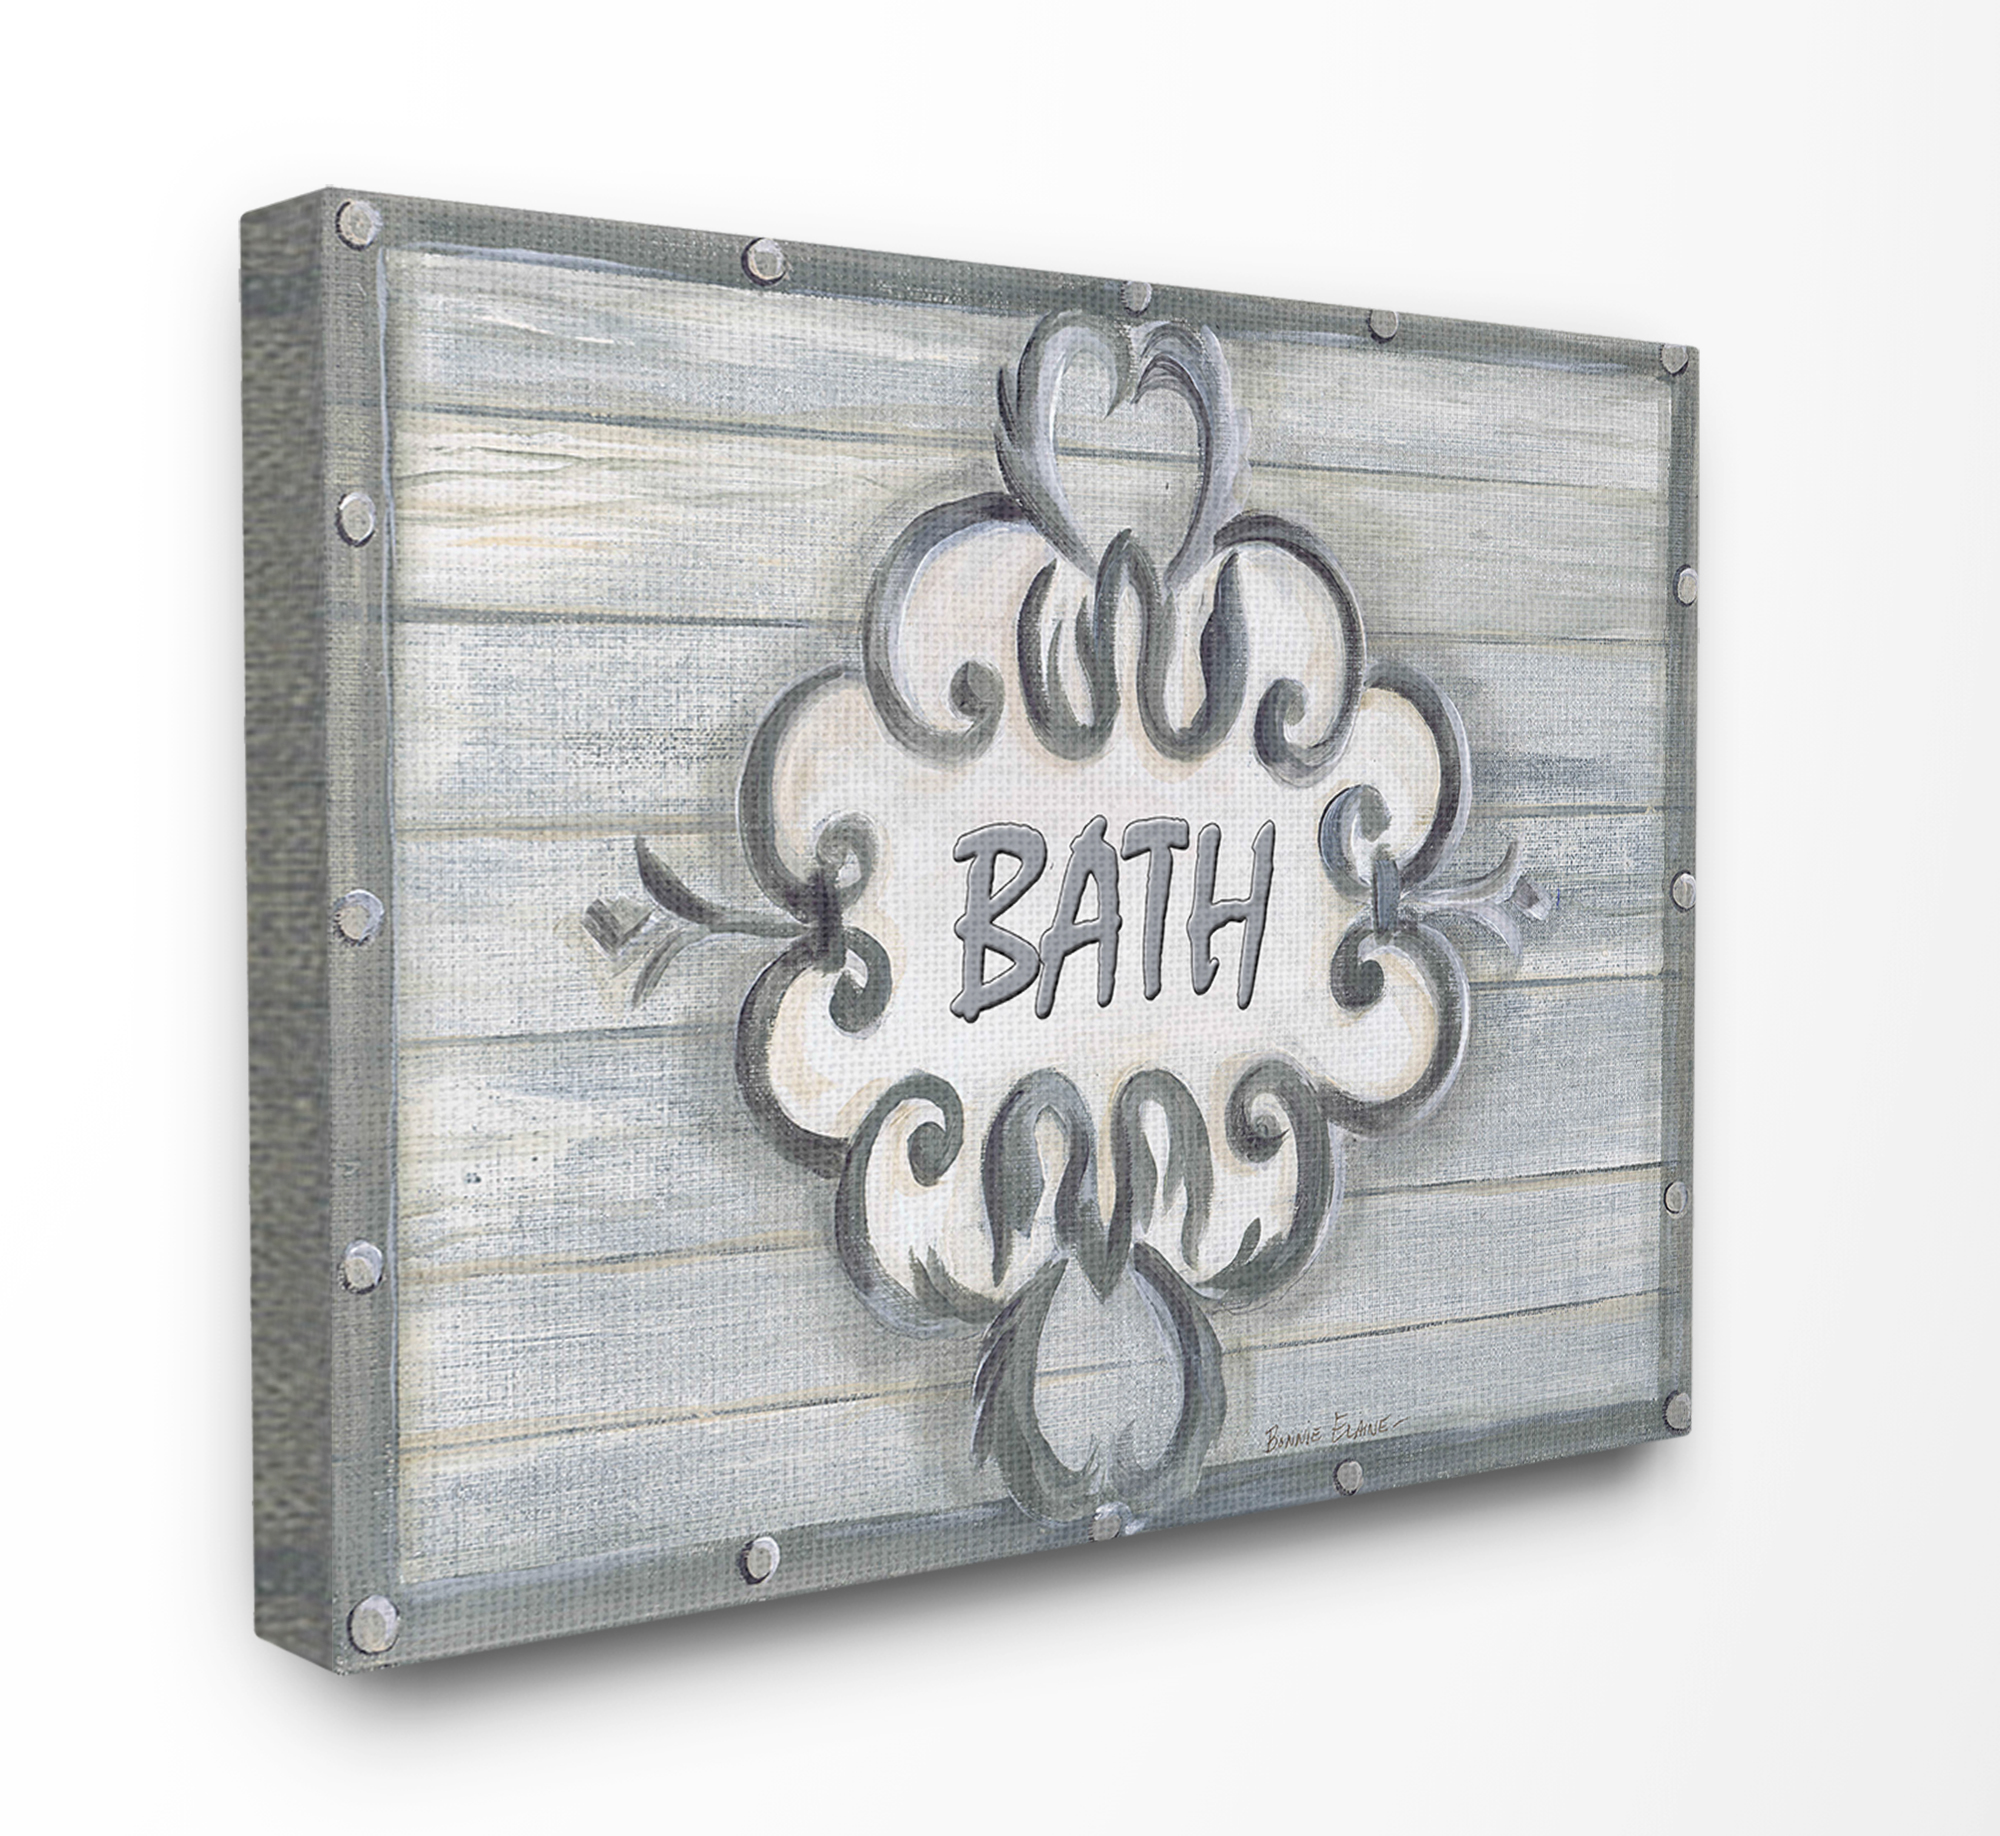 The Stupell Home Decor Collection Bath Grey Bead Board with Scroll Plaque Bathroom Stretched Canvas Wall Art, 16 x 1.5 x 20